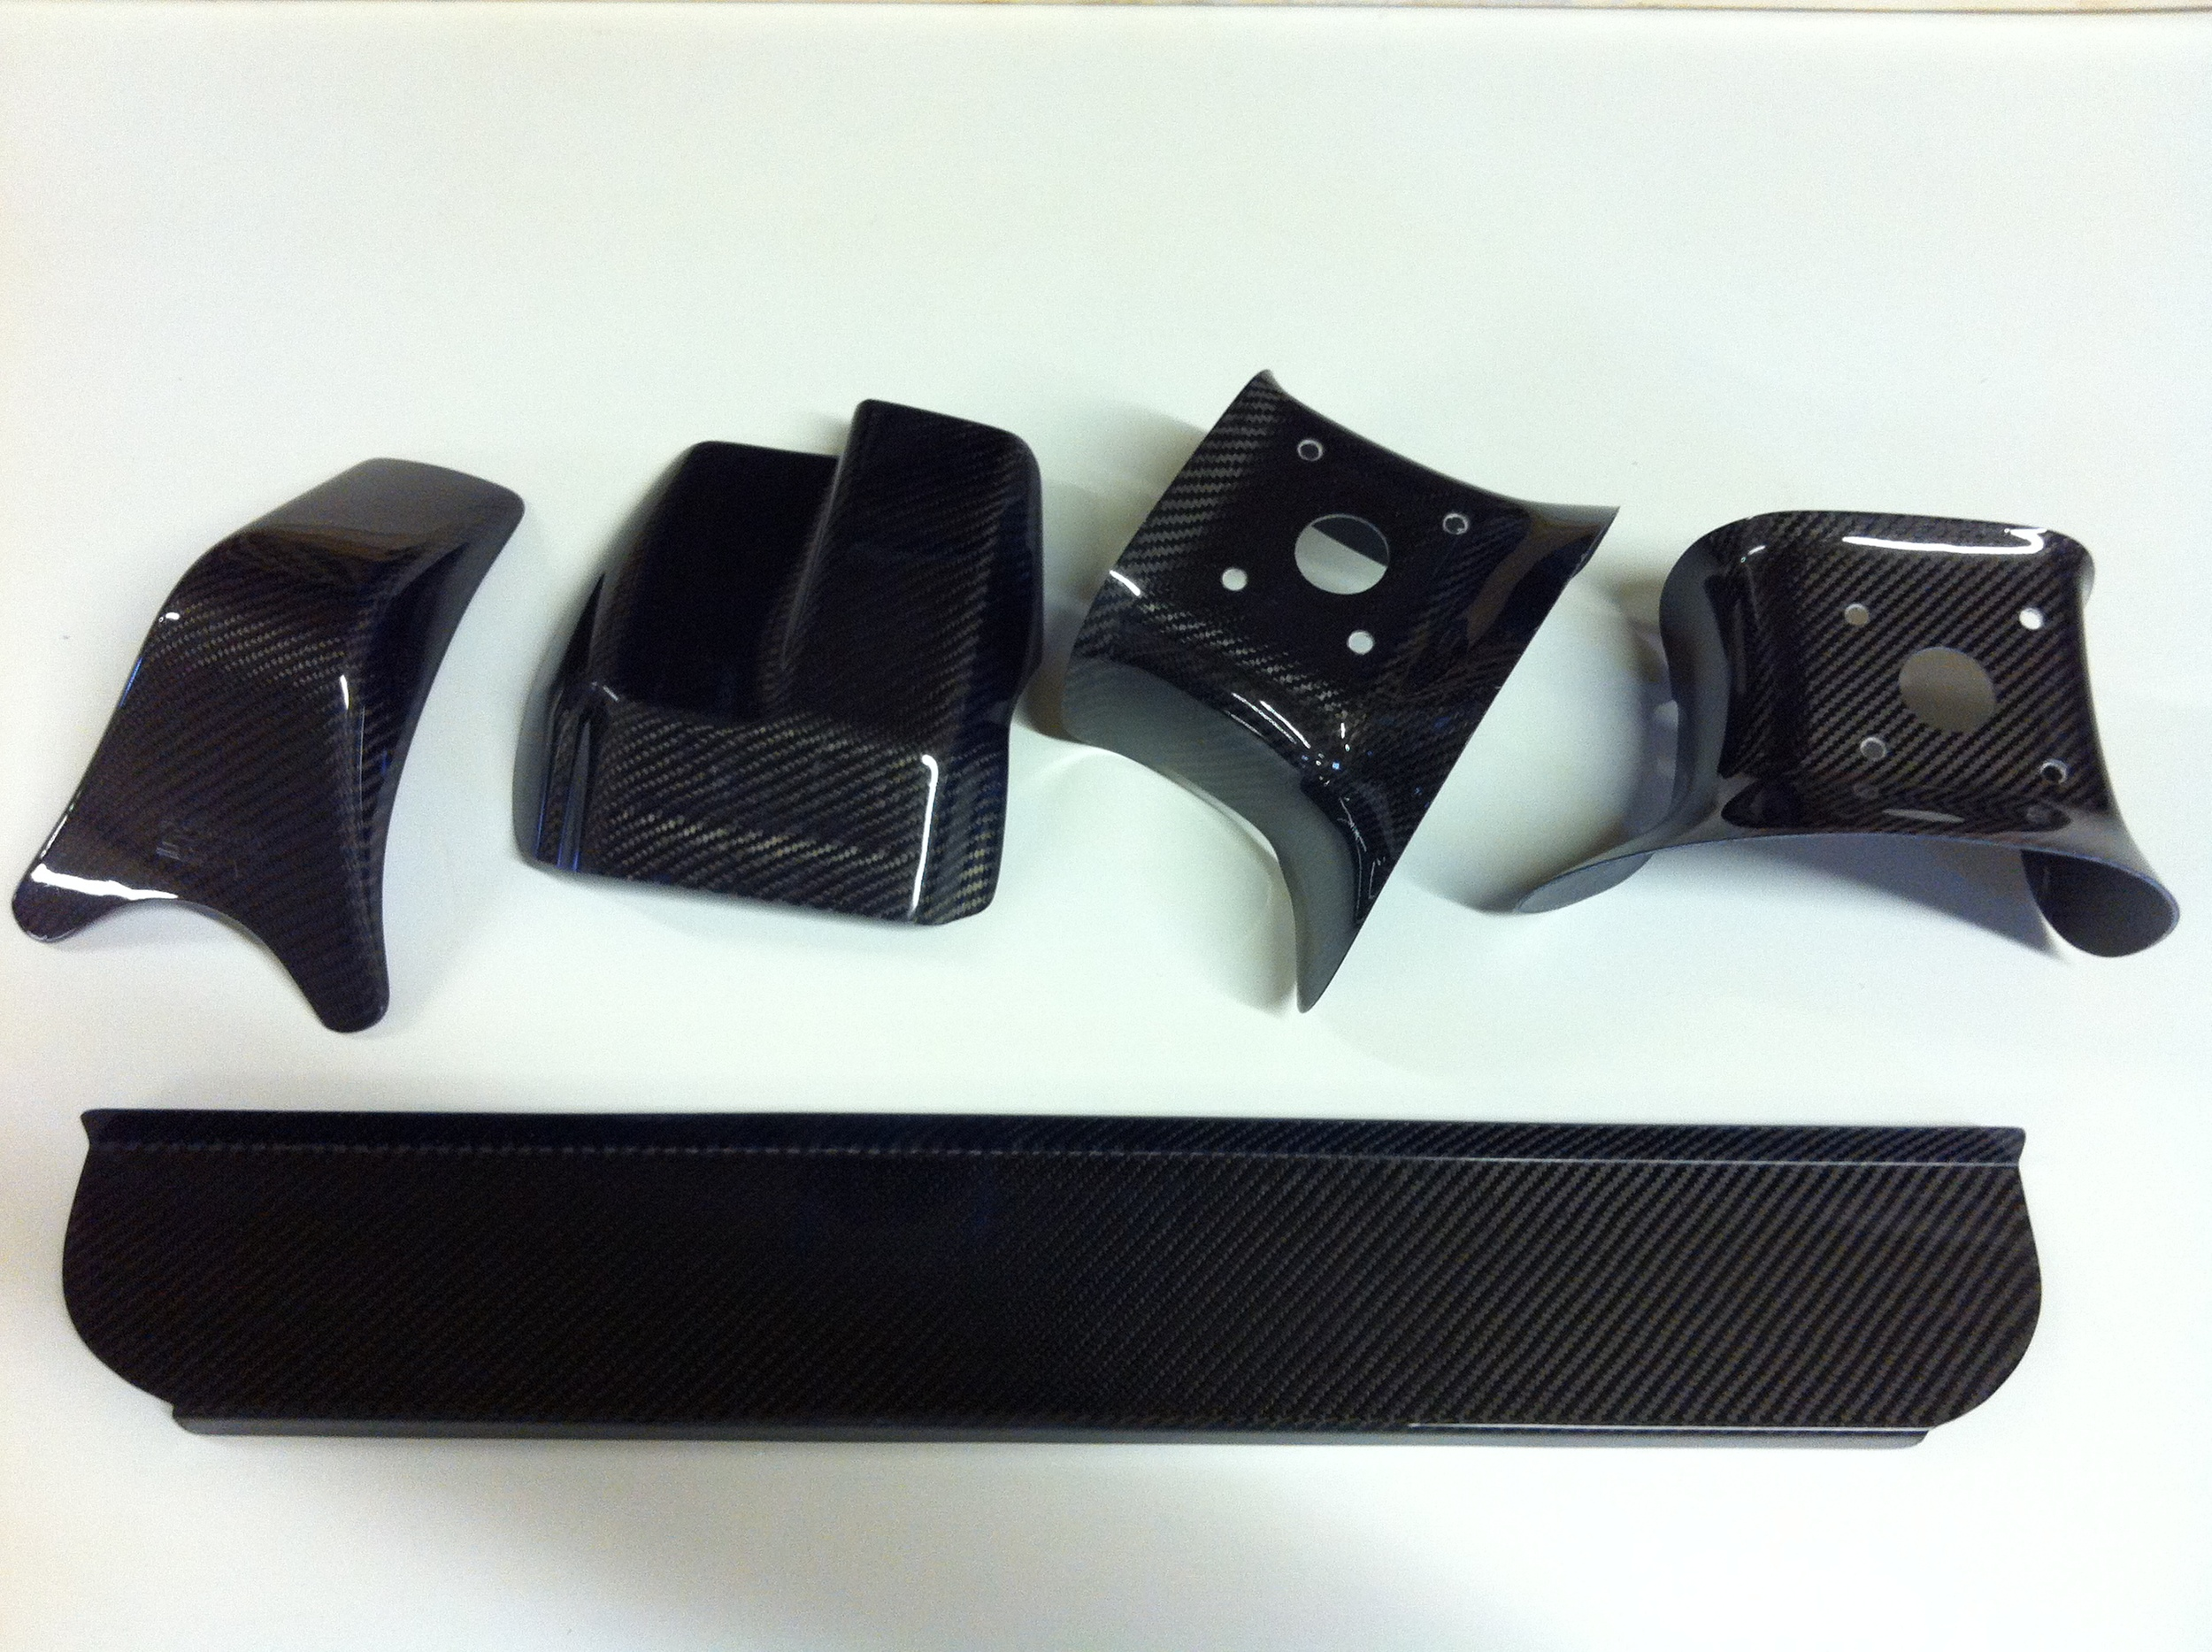 carbon products made by f-hot, ready for the dispatch department to package and send out.